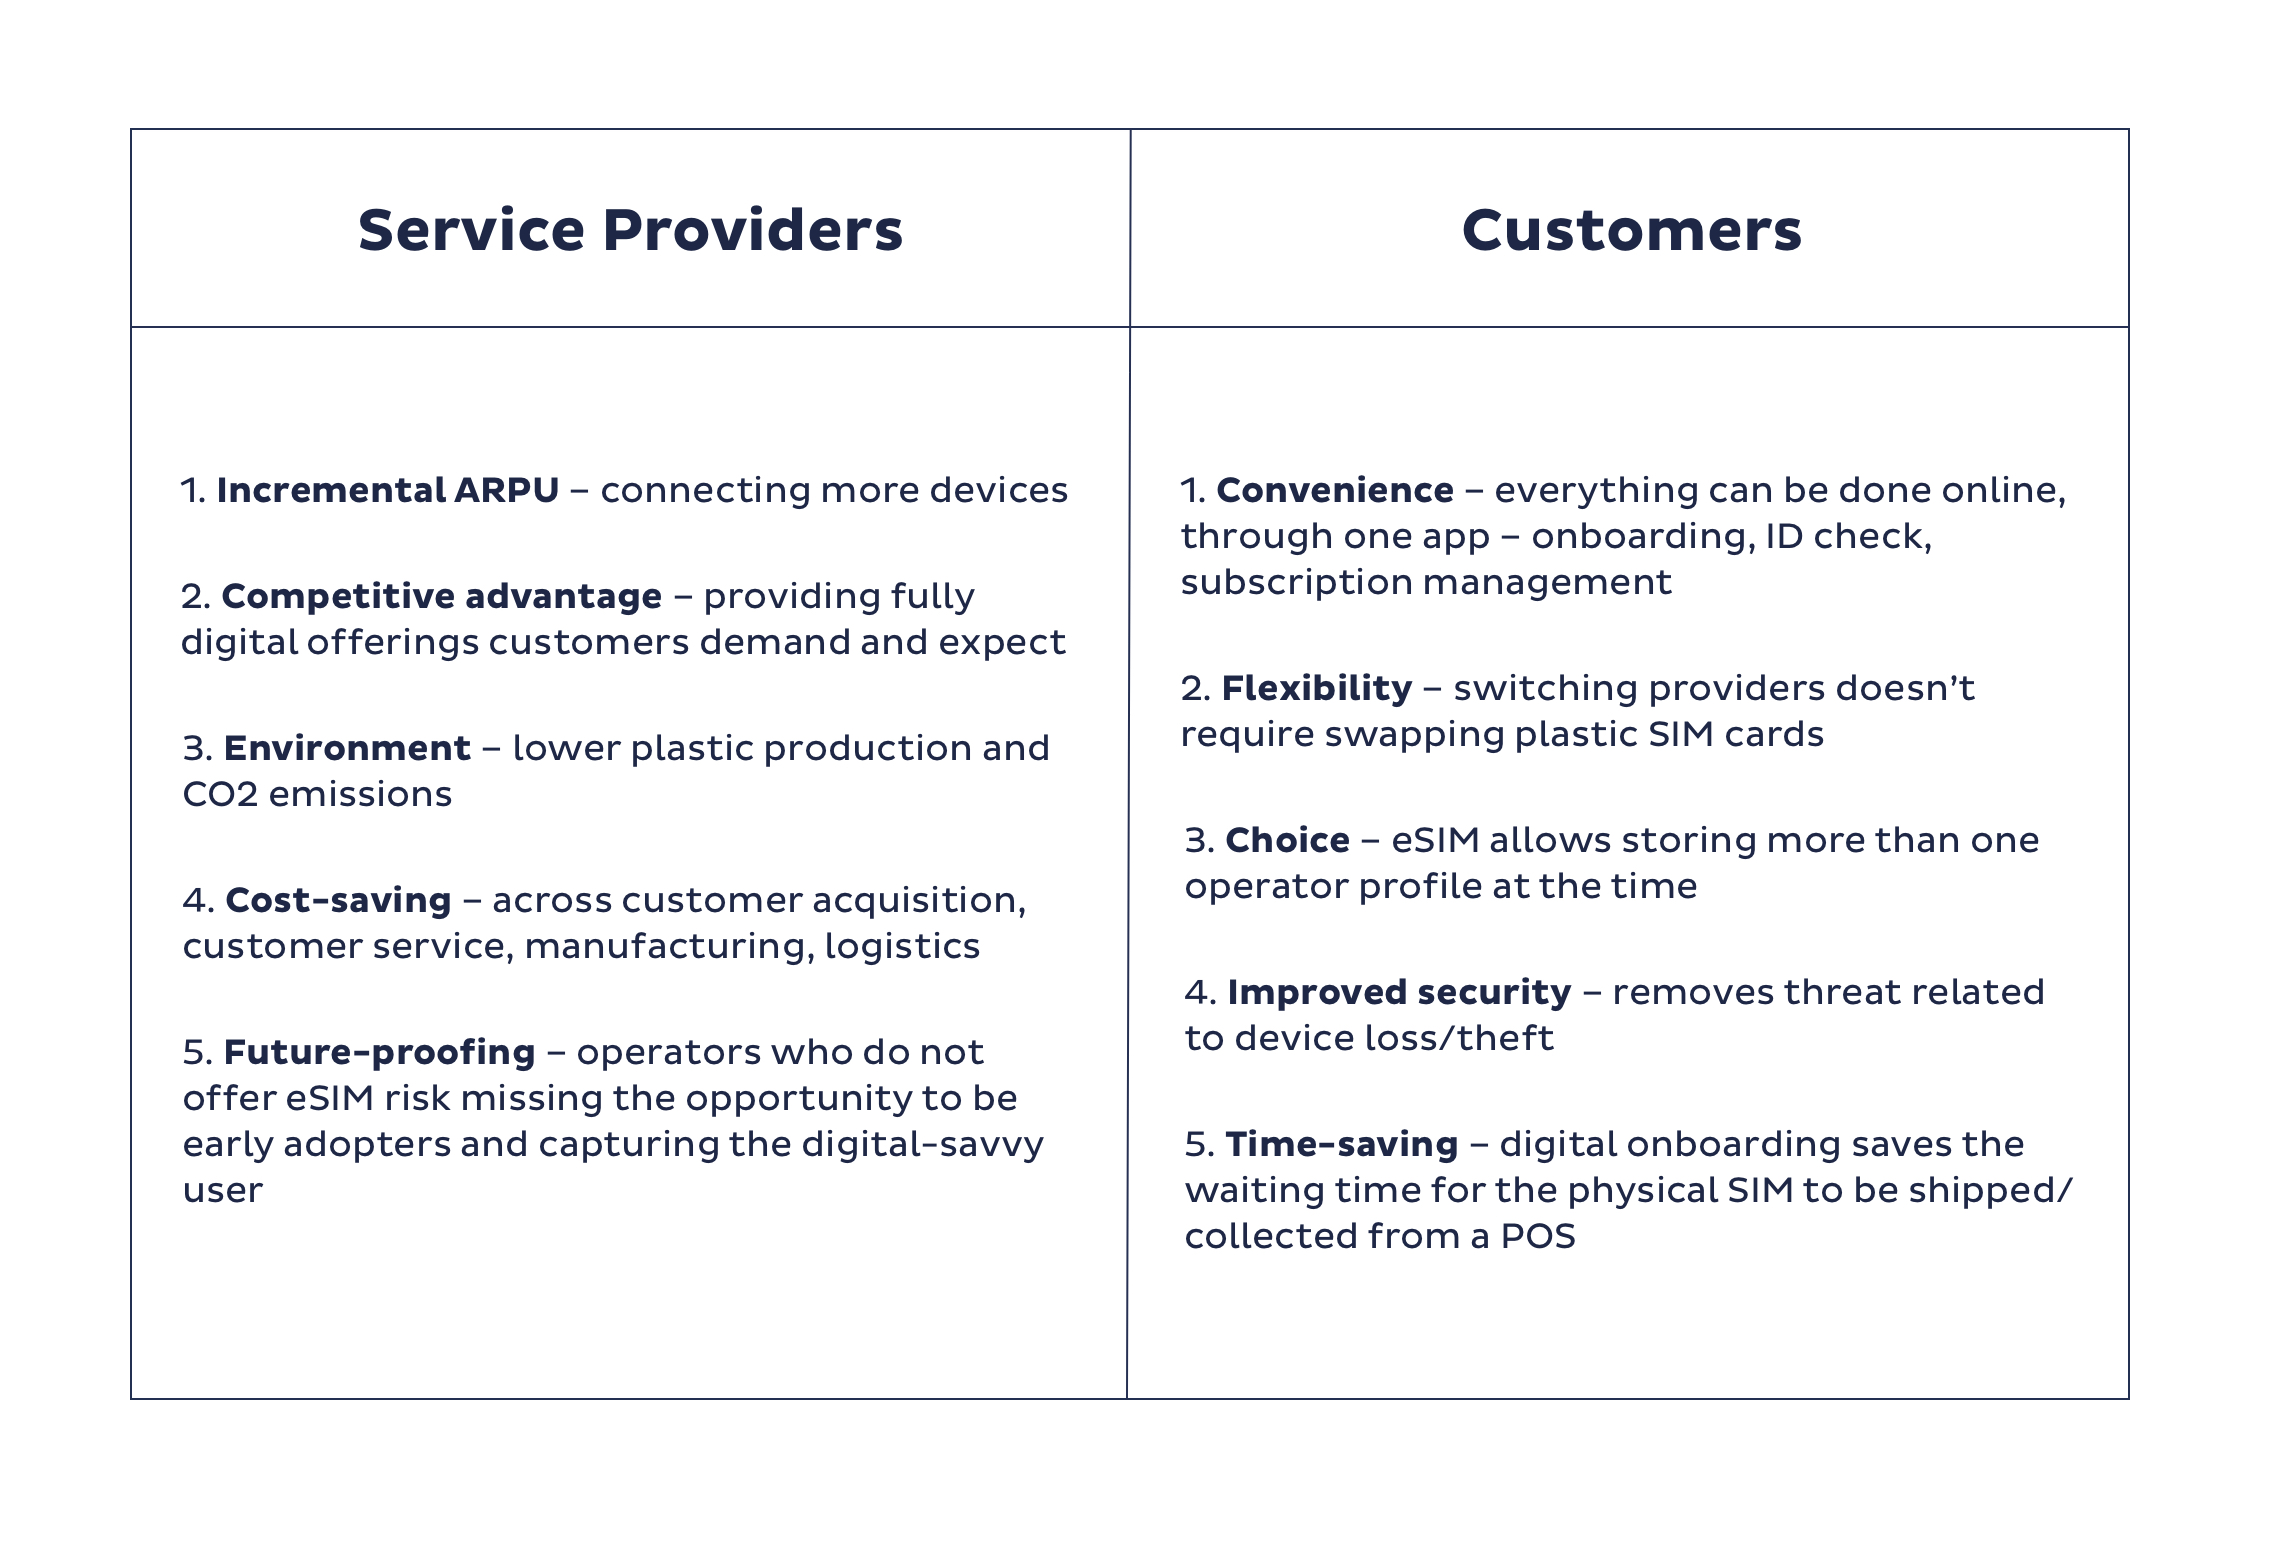 A table of eSIM benefits for operators and users